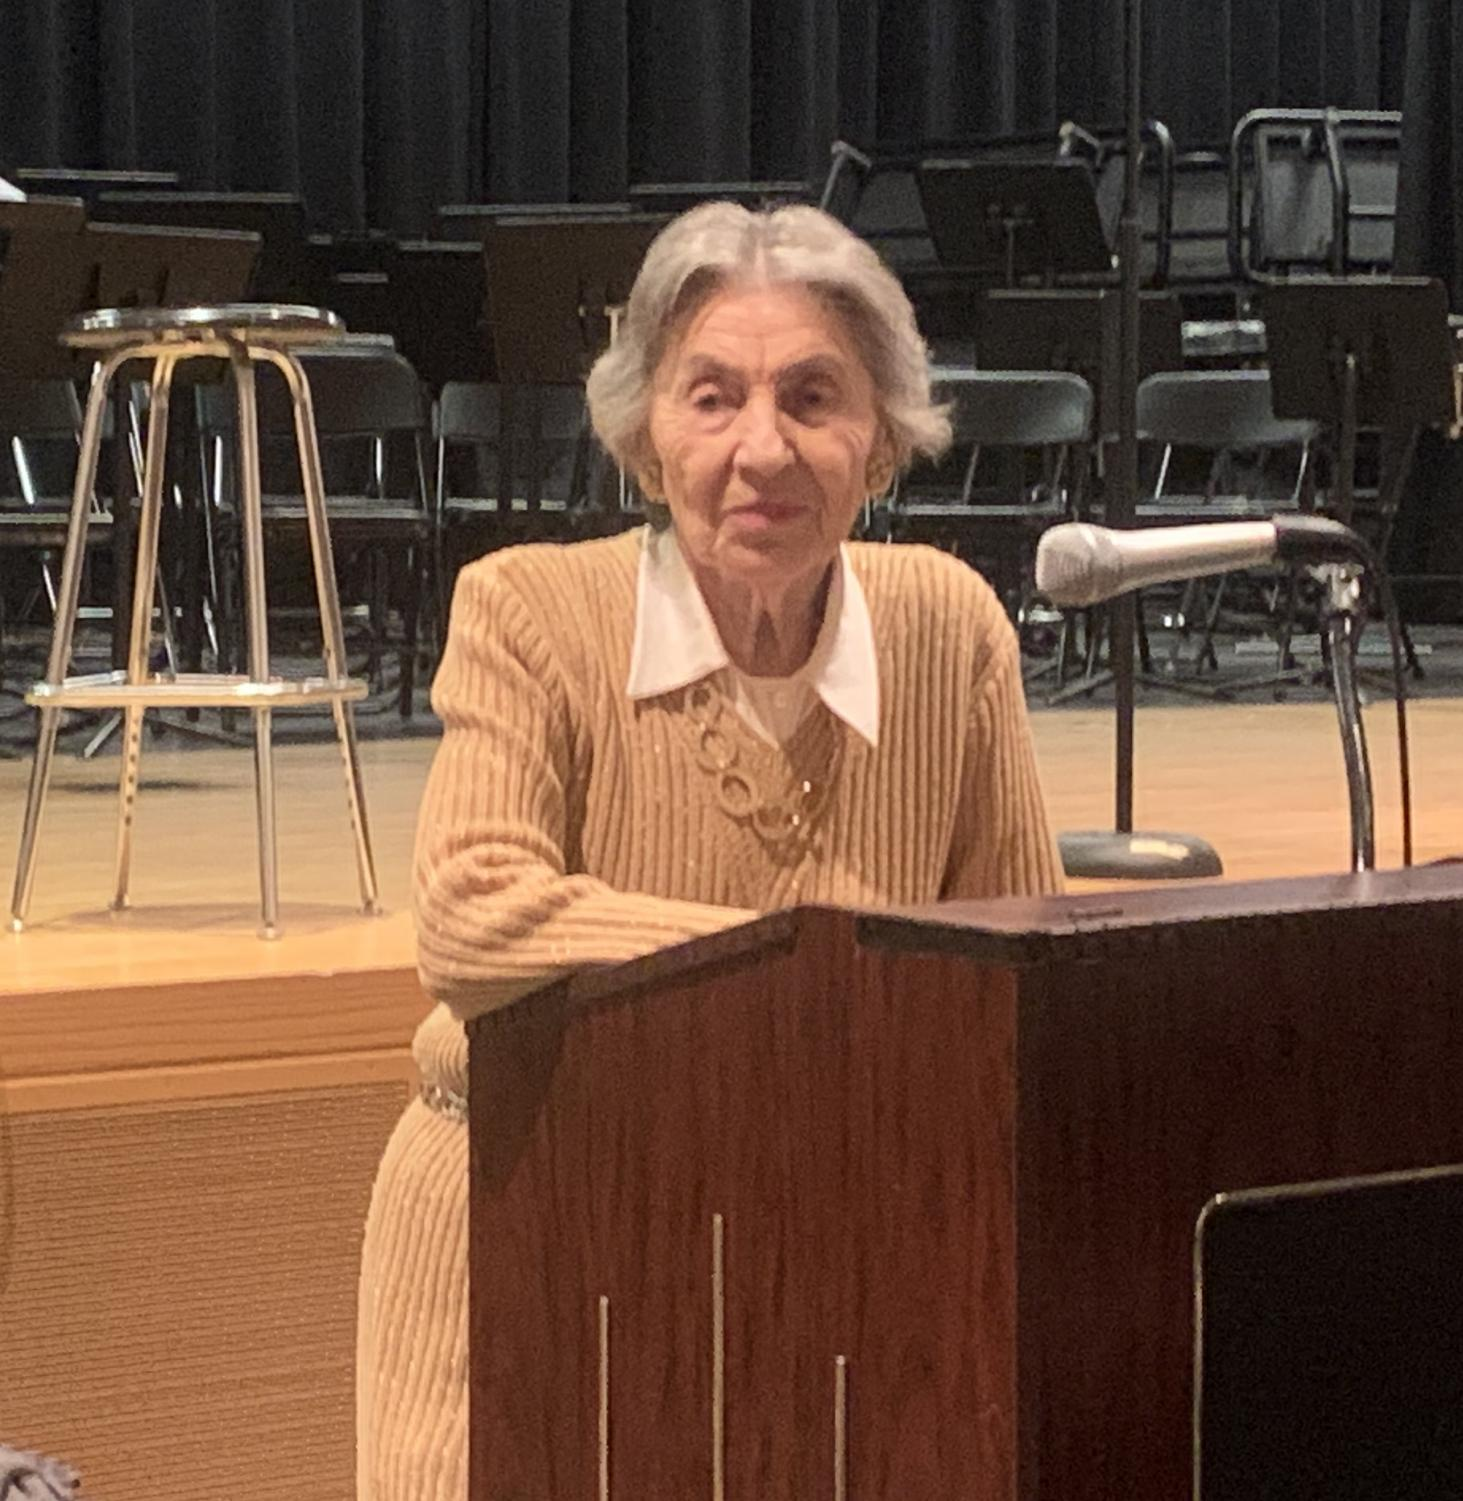 Bella Miller spoke to Pascack Valley students in World History, Critical Analysis of History Through Film, and Literature of the Holocaust classes. She is a Holocaust survivor whose goal is to educate others on the past and spread kindness.